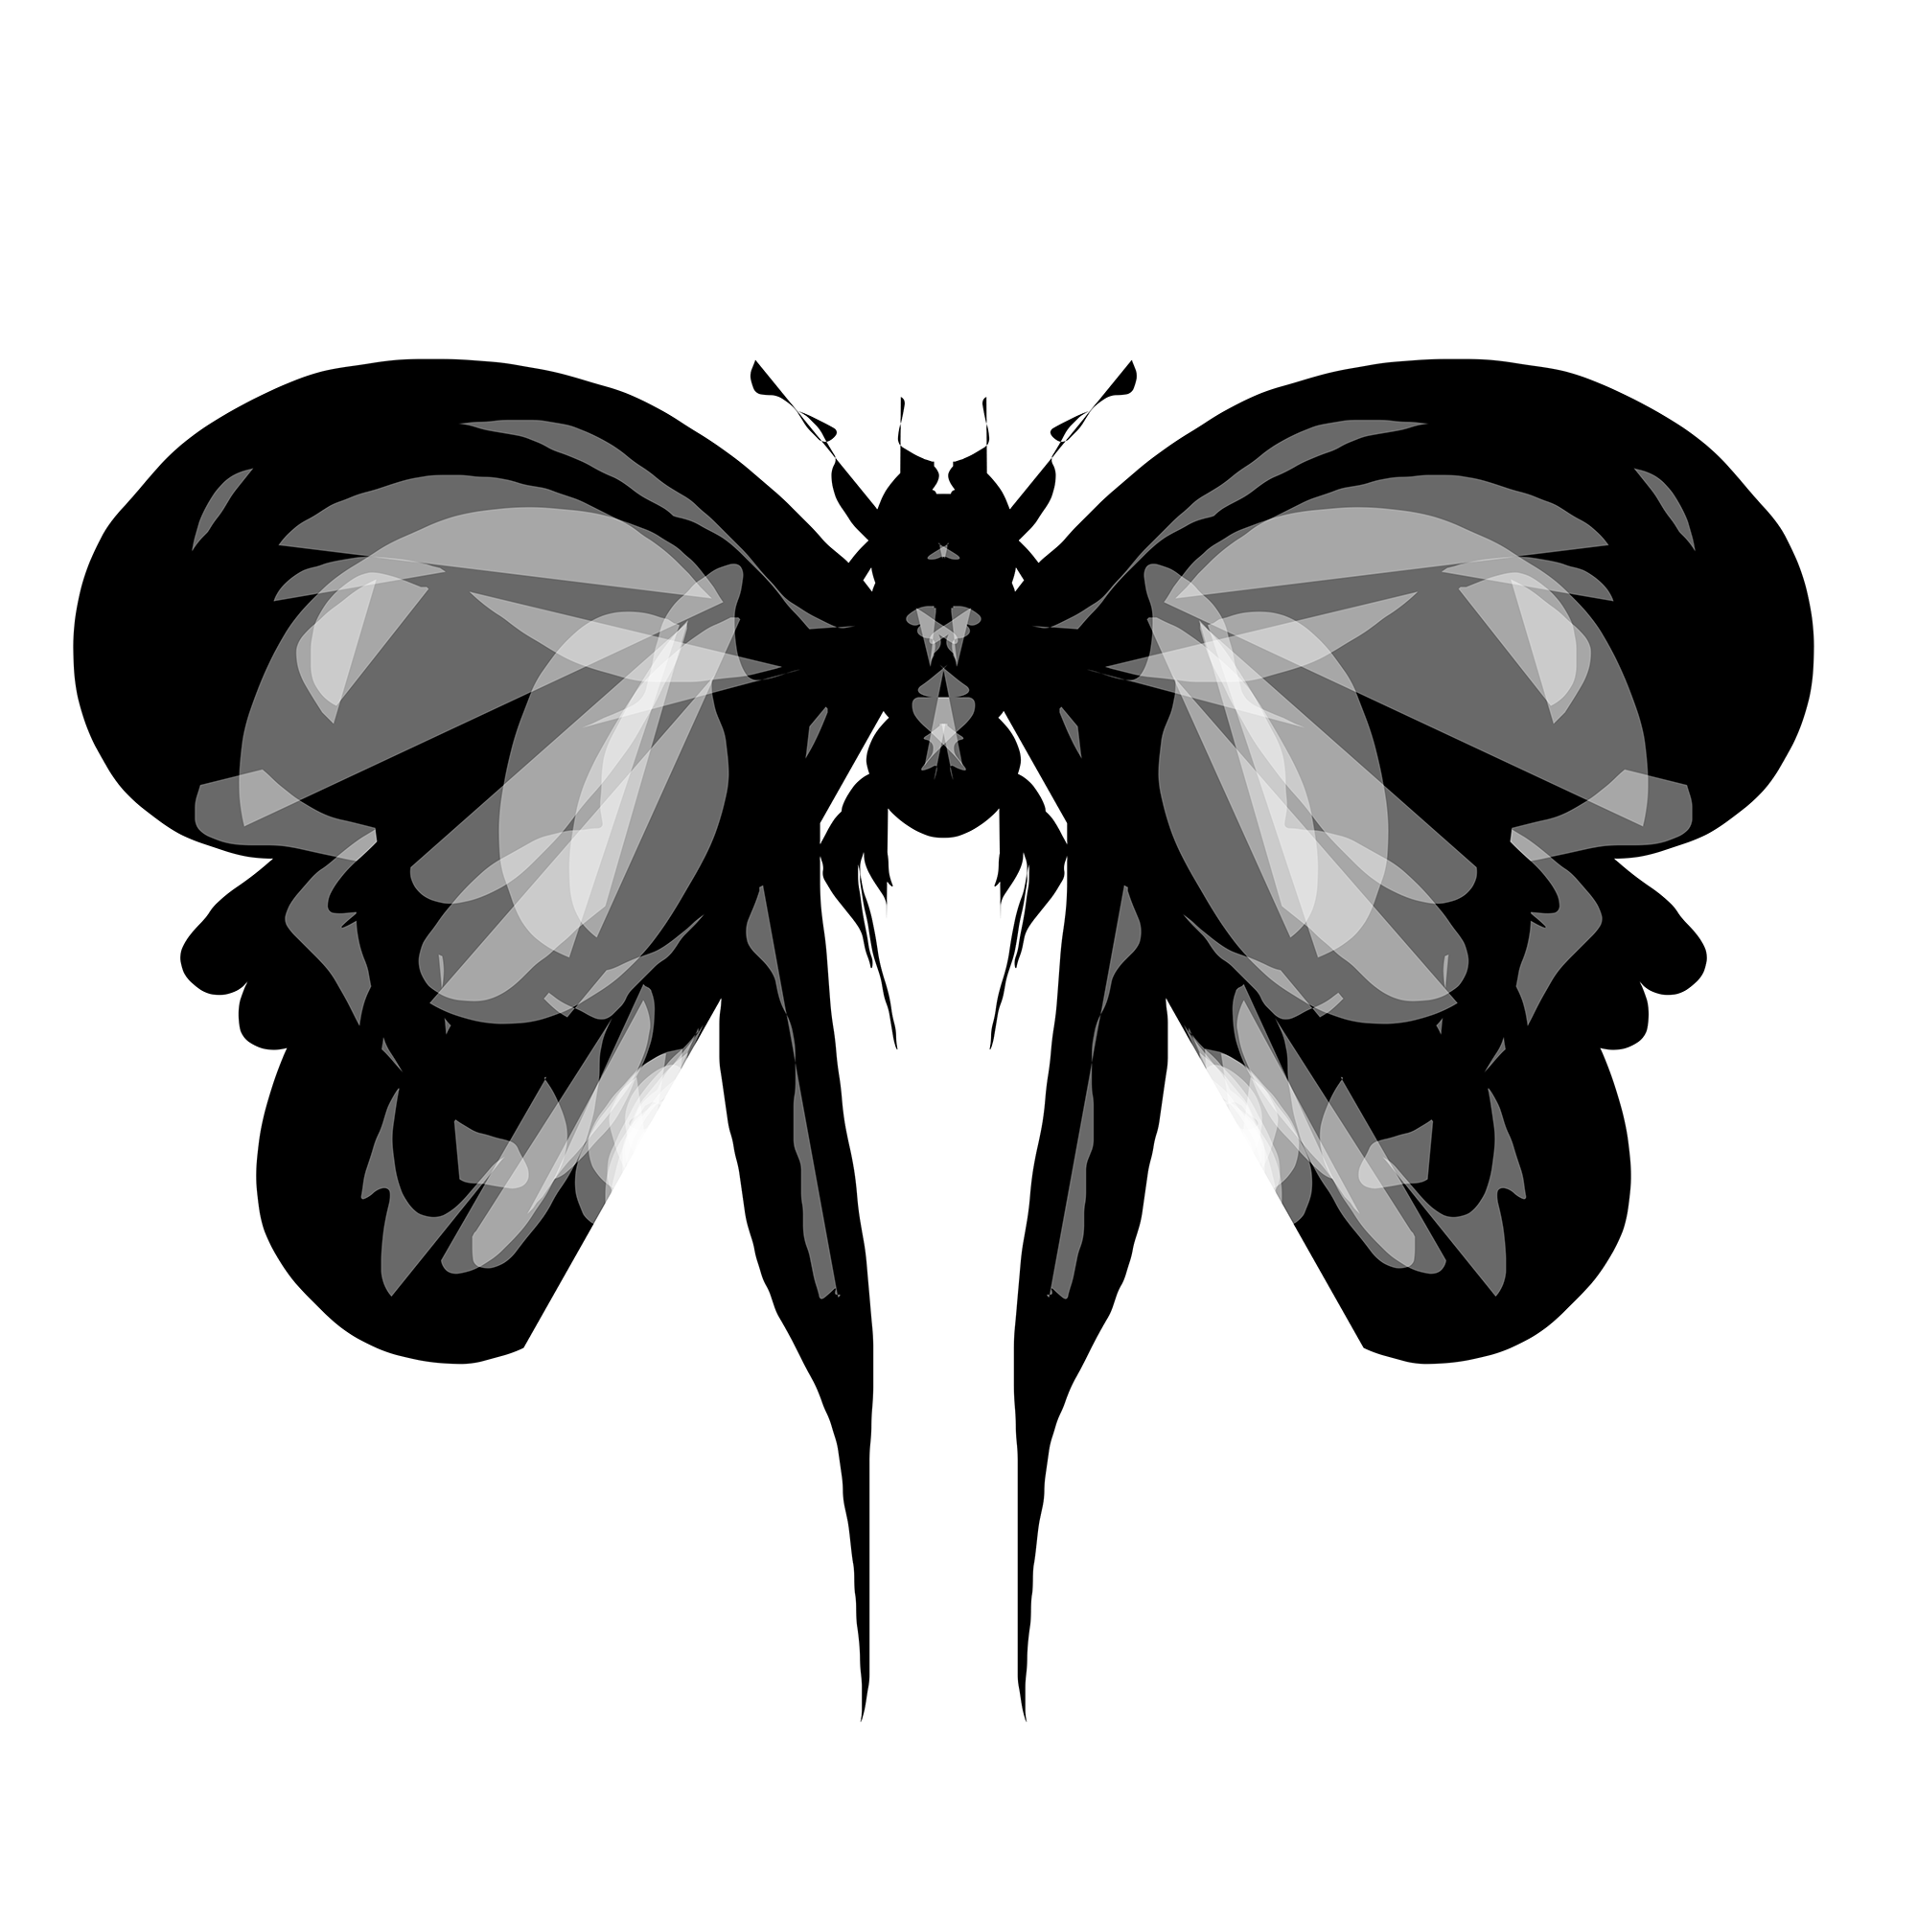 Insect on Alchemy before Photoshop, NO.1  23/09/14